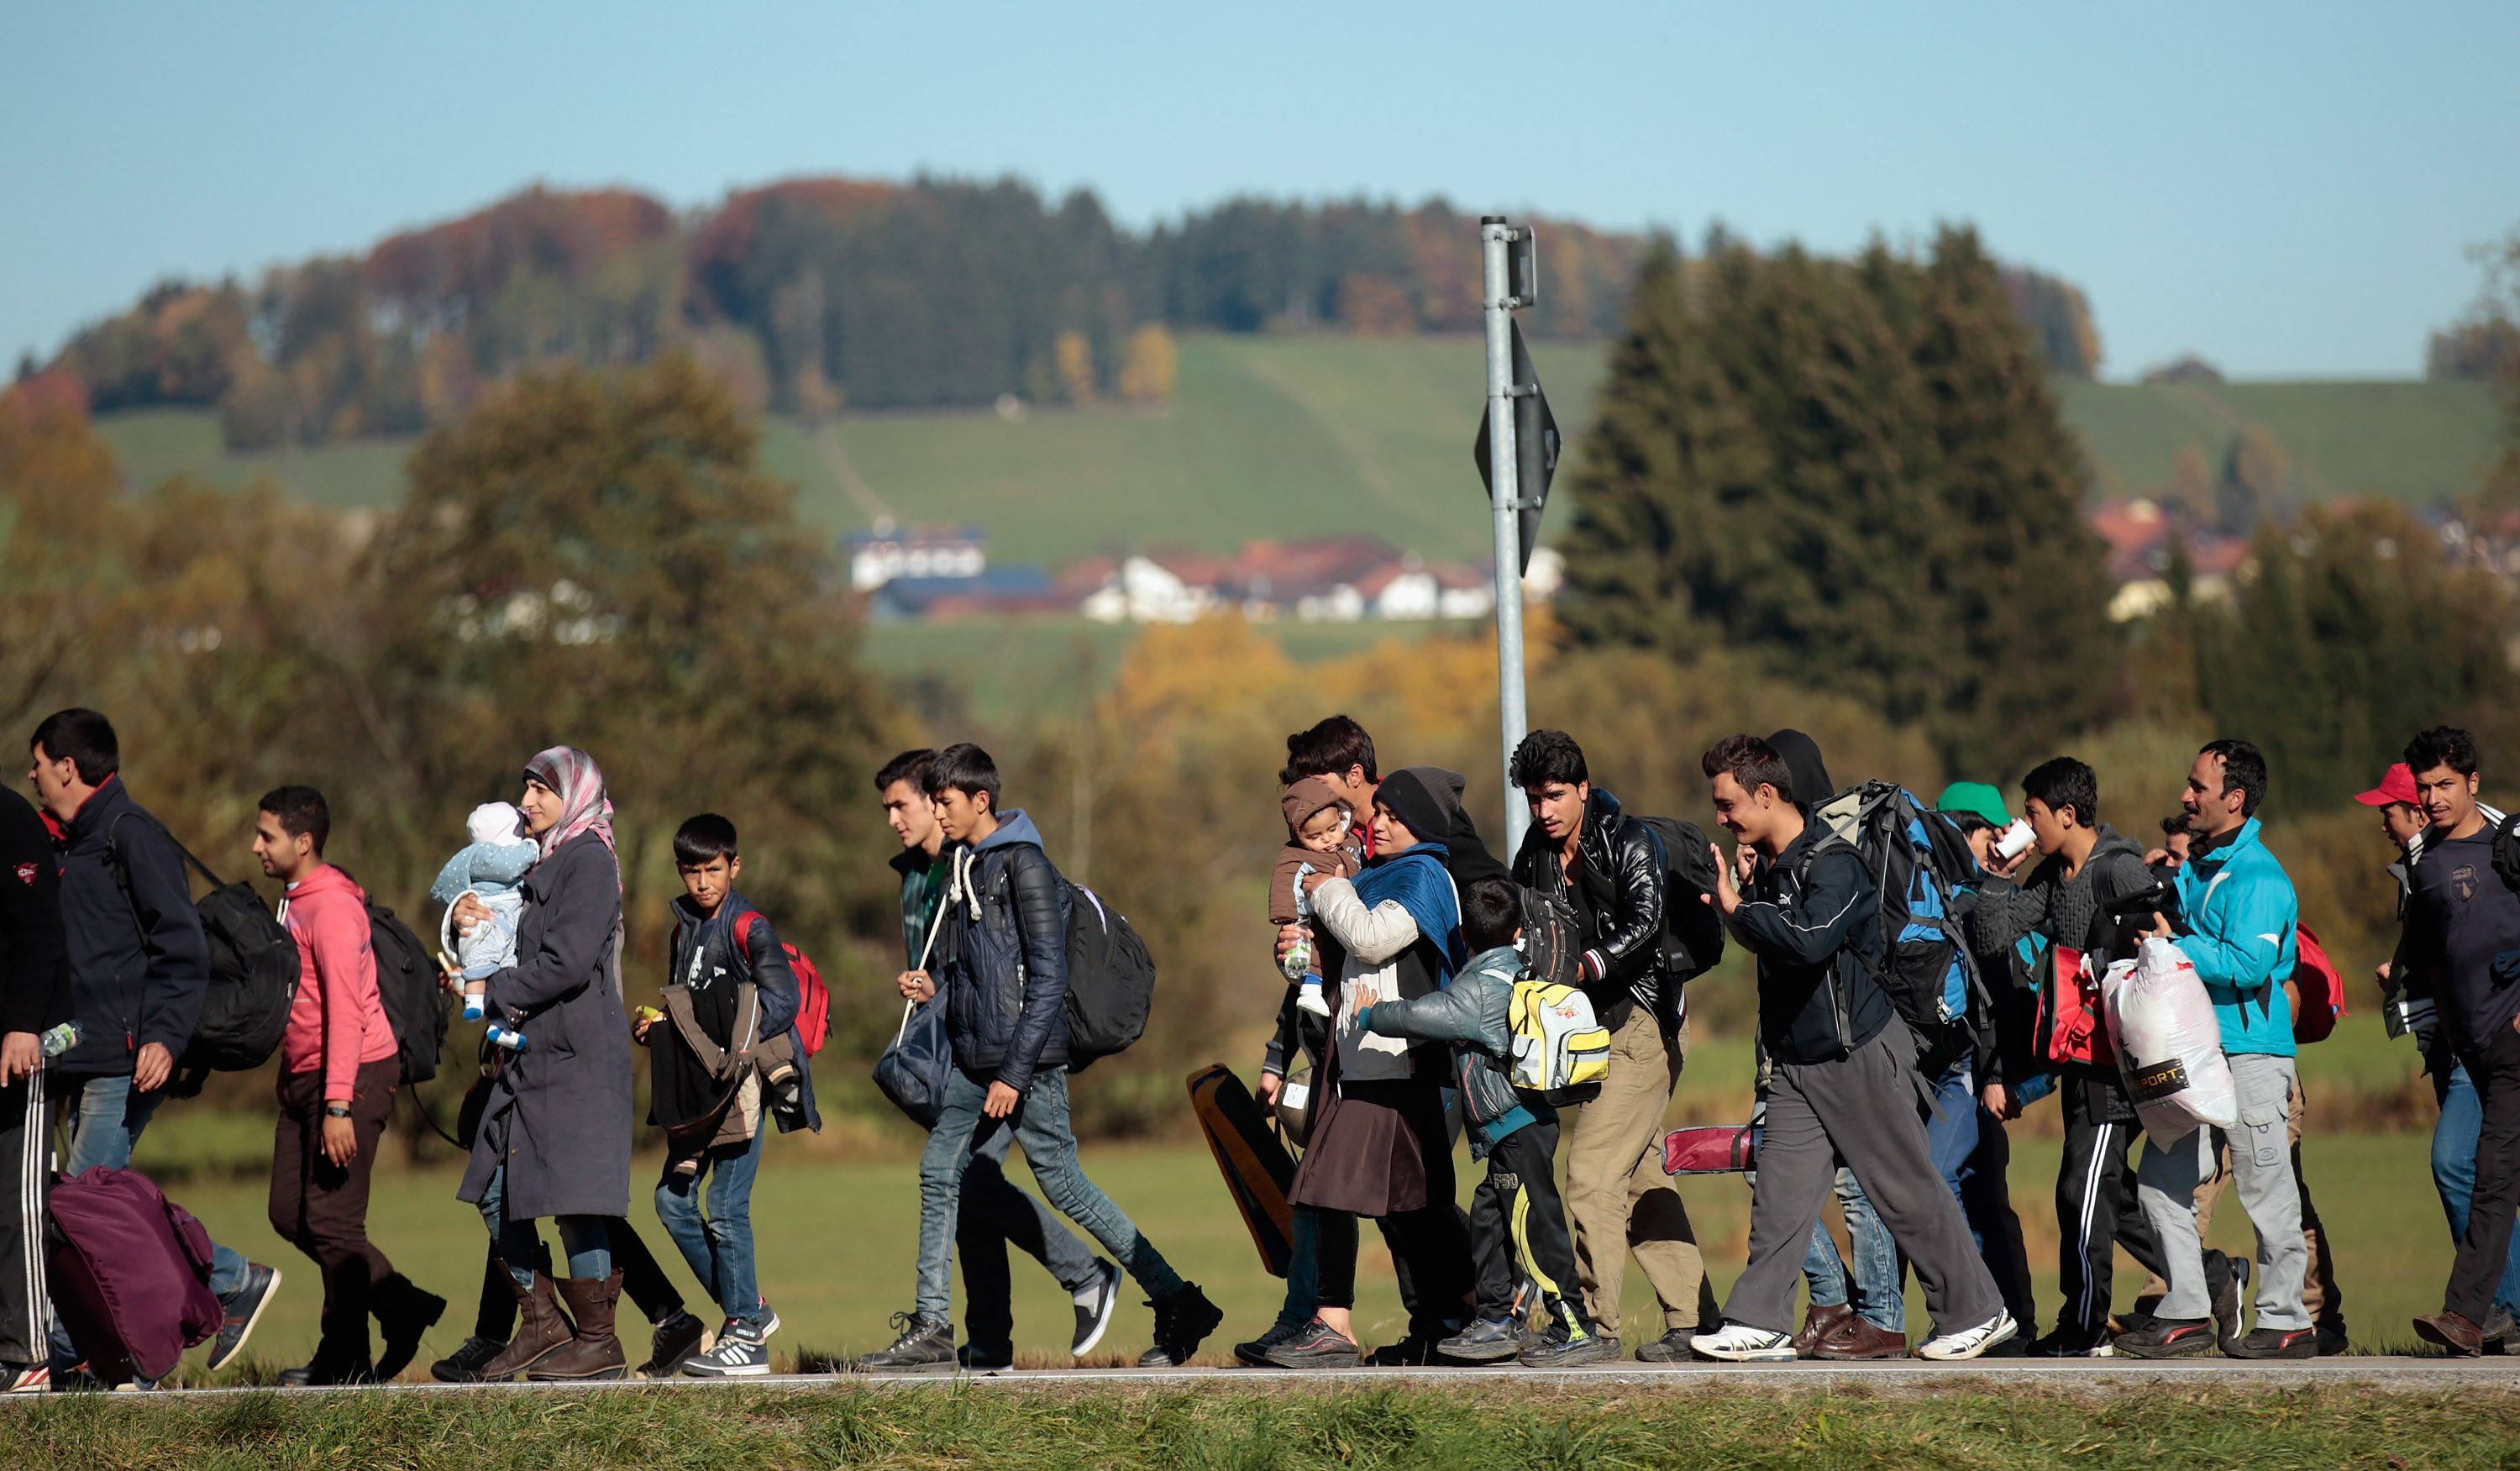 German police lead arriving migrants along a street to a transport facility after gathering them at the border to Austria on October 28, 2015 near Wegscheid, Germany.